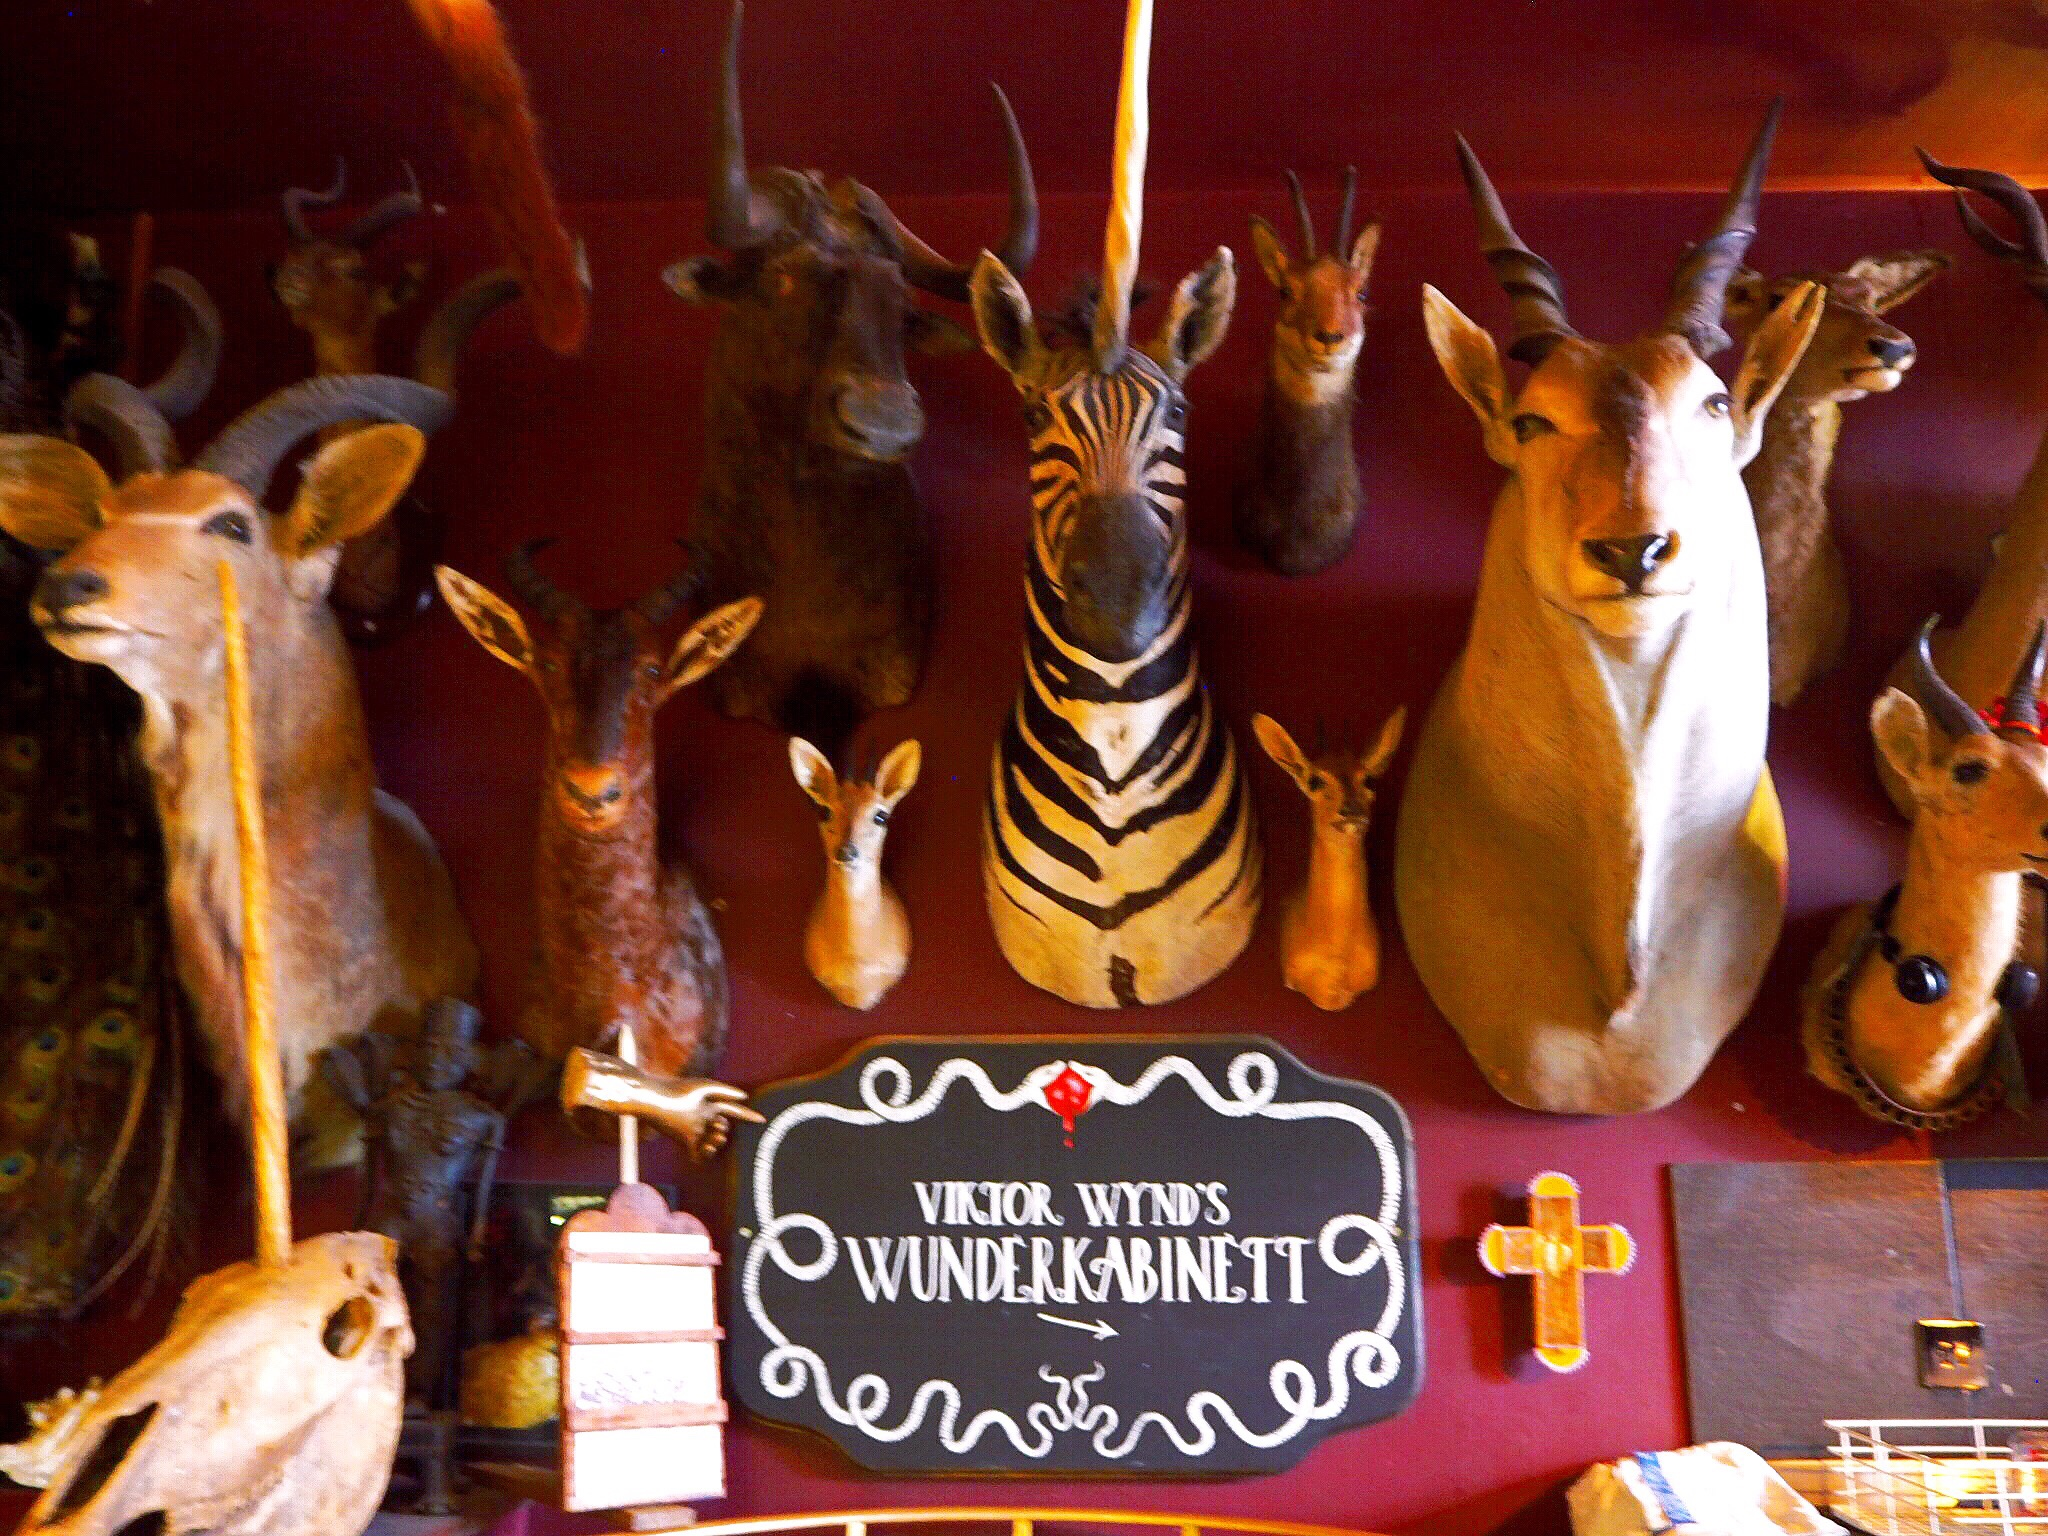 The Museum of Witchcraft and Magic London